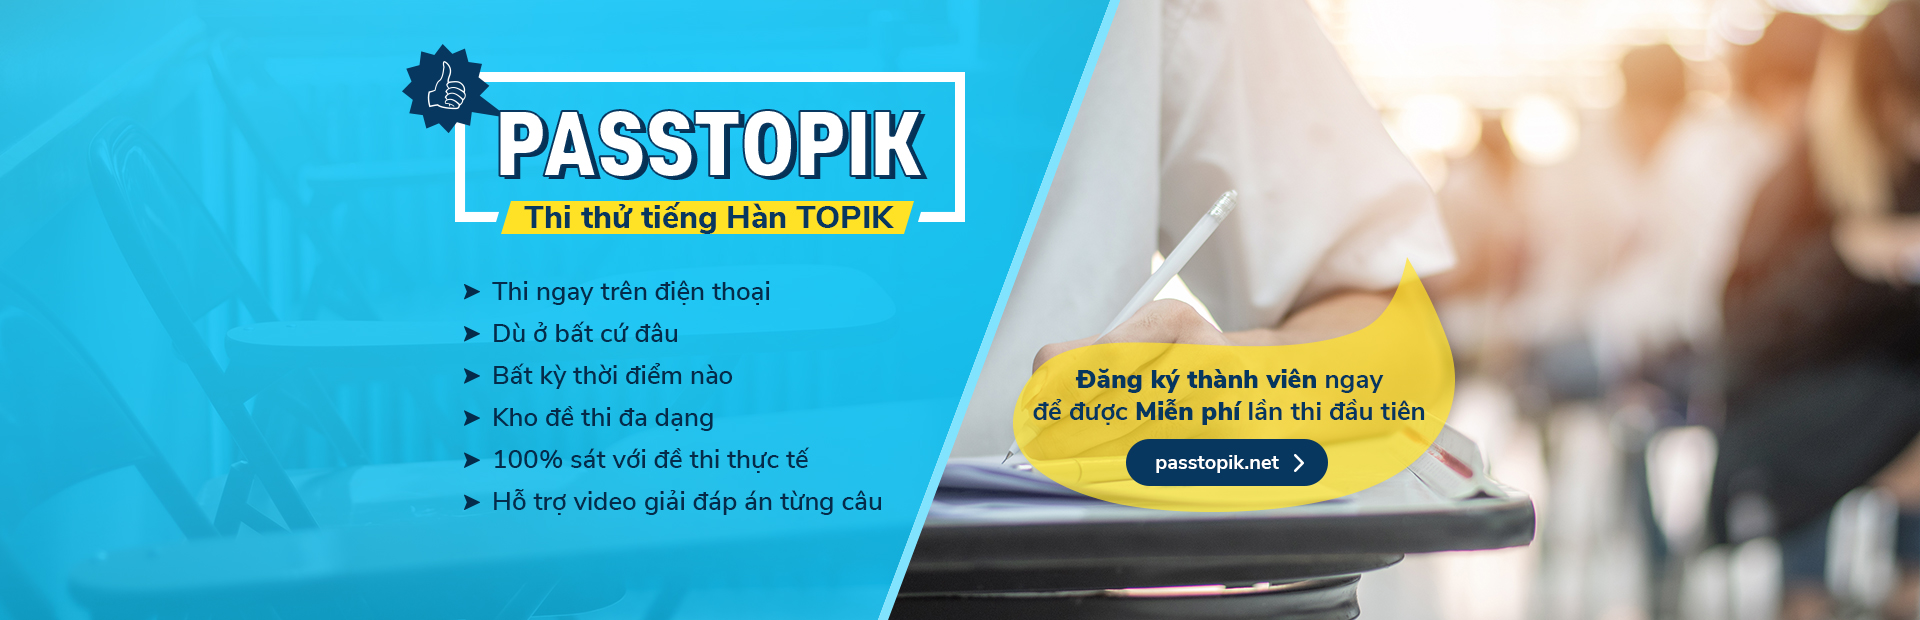 PASS TOPIK